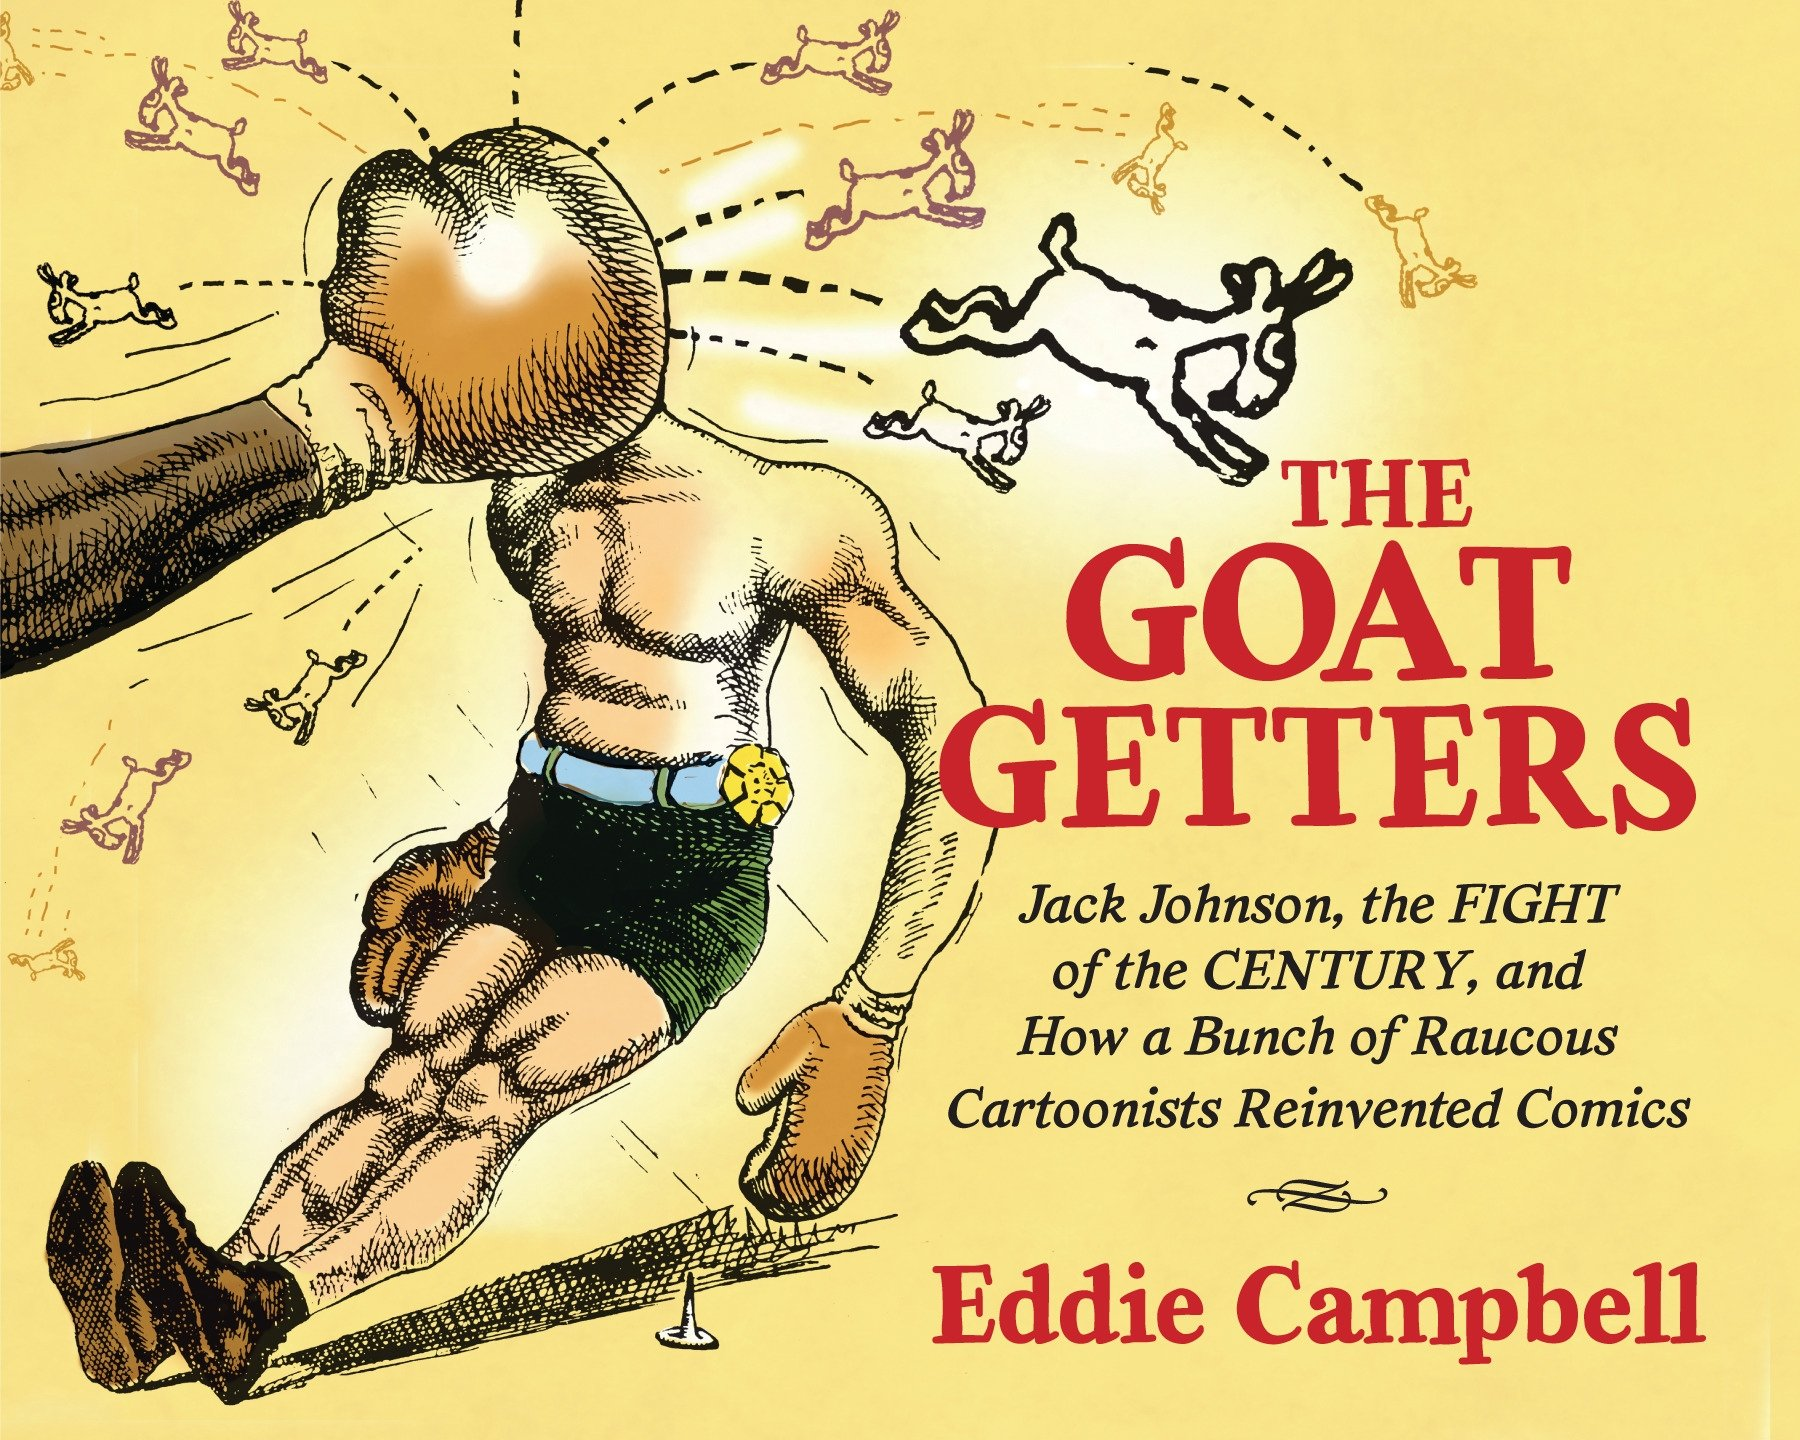 Download The Goat-Getters: Jack Johnson, the Fight of the Century, and How a Bunch of Raucous Cartoonists Reinvented Comics ebook